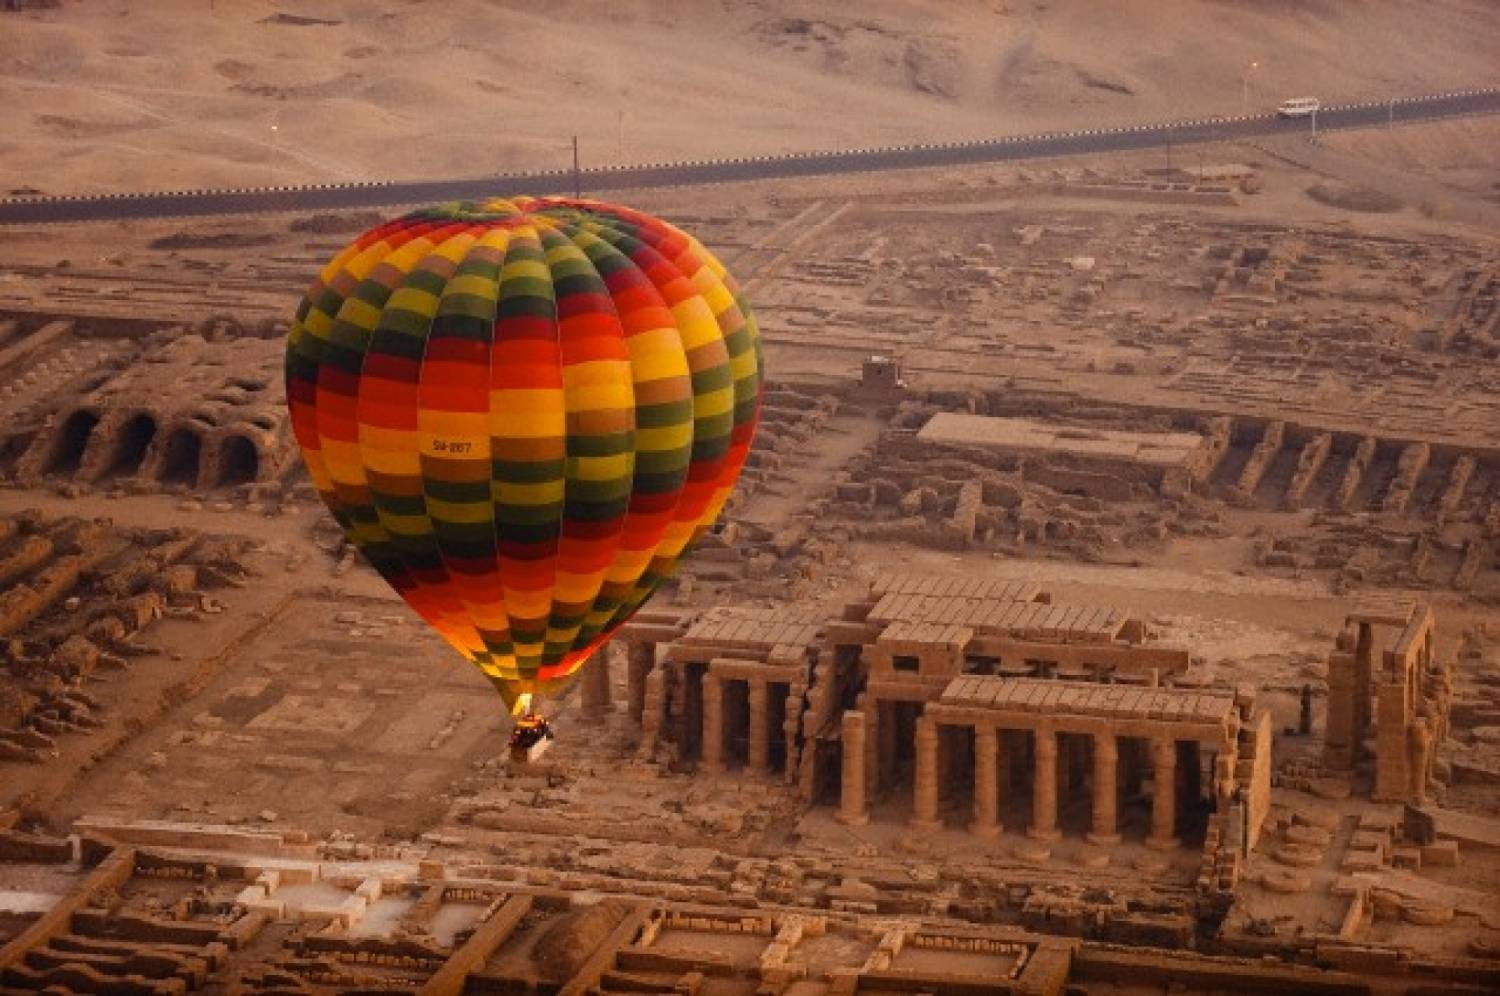 Hot air balloon crashes in Egypt, 1 tourist killed